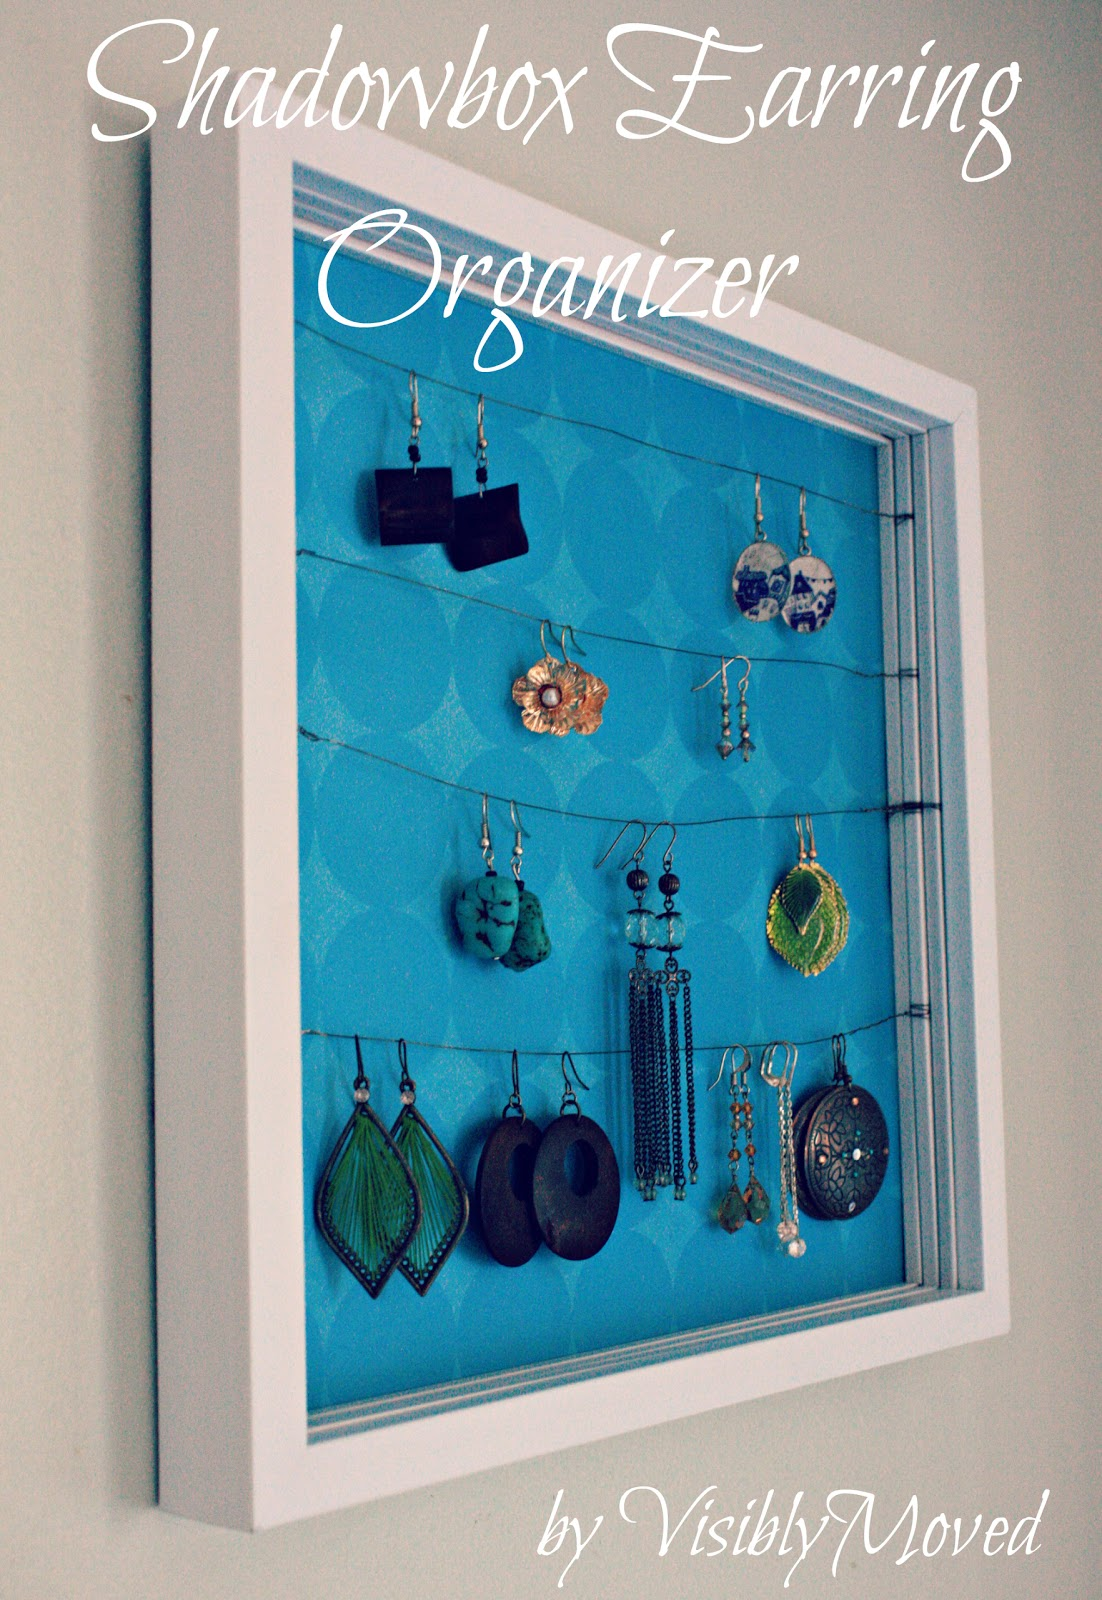 Visibly moved diy shadowbox earring organizer for Diy travel earring holder